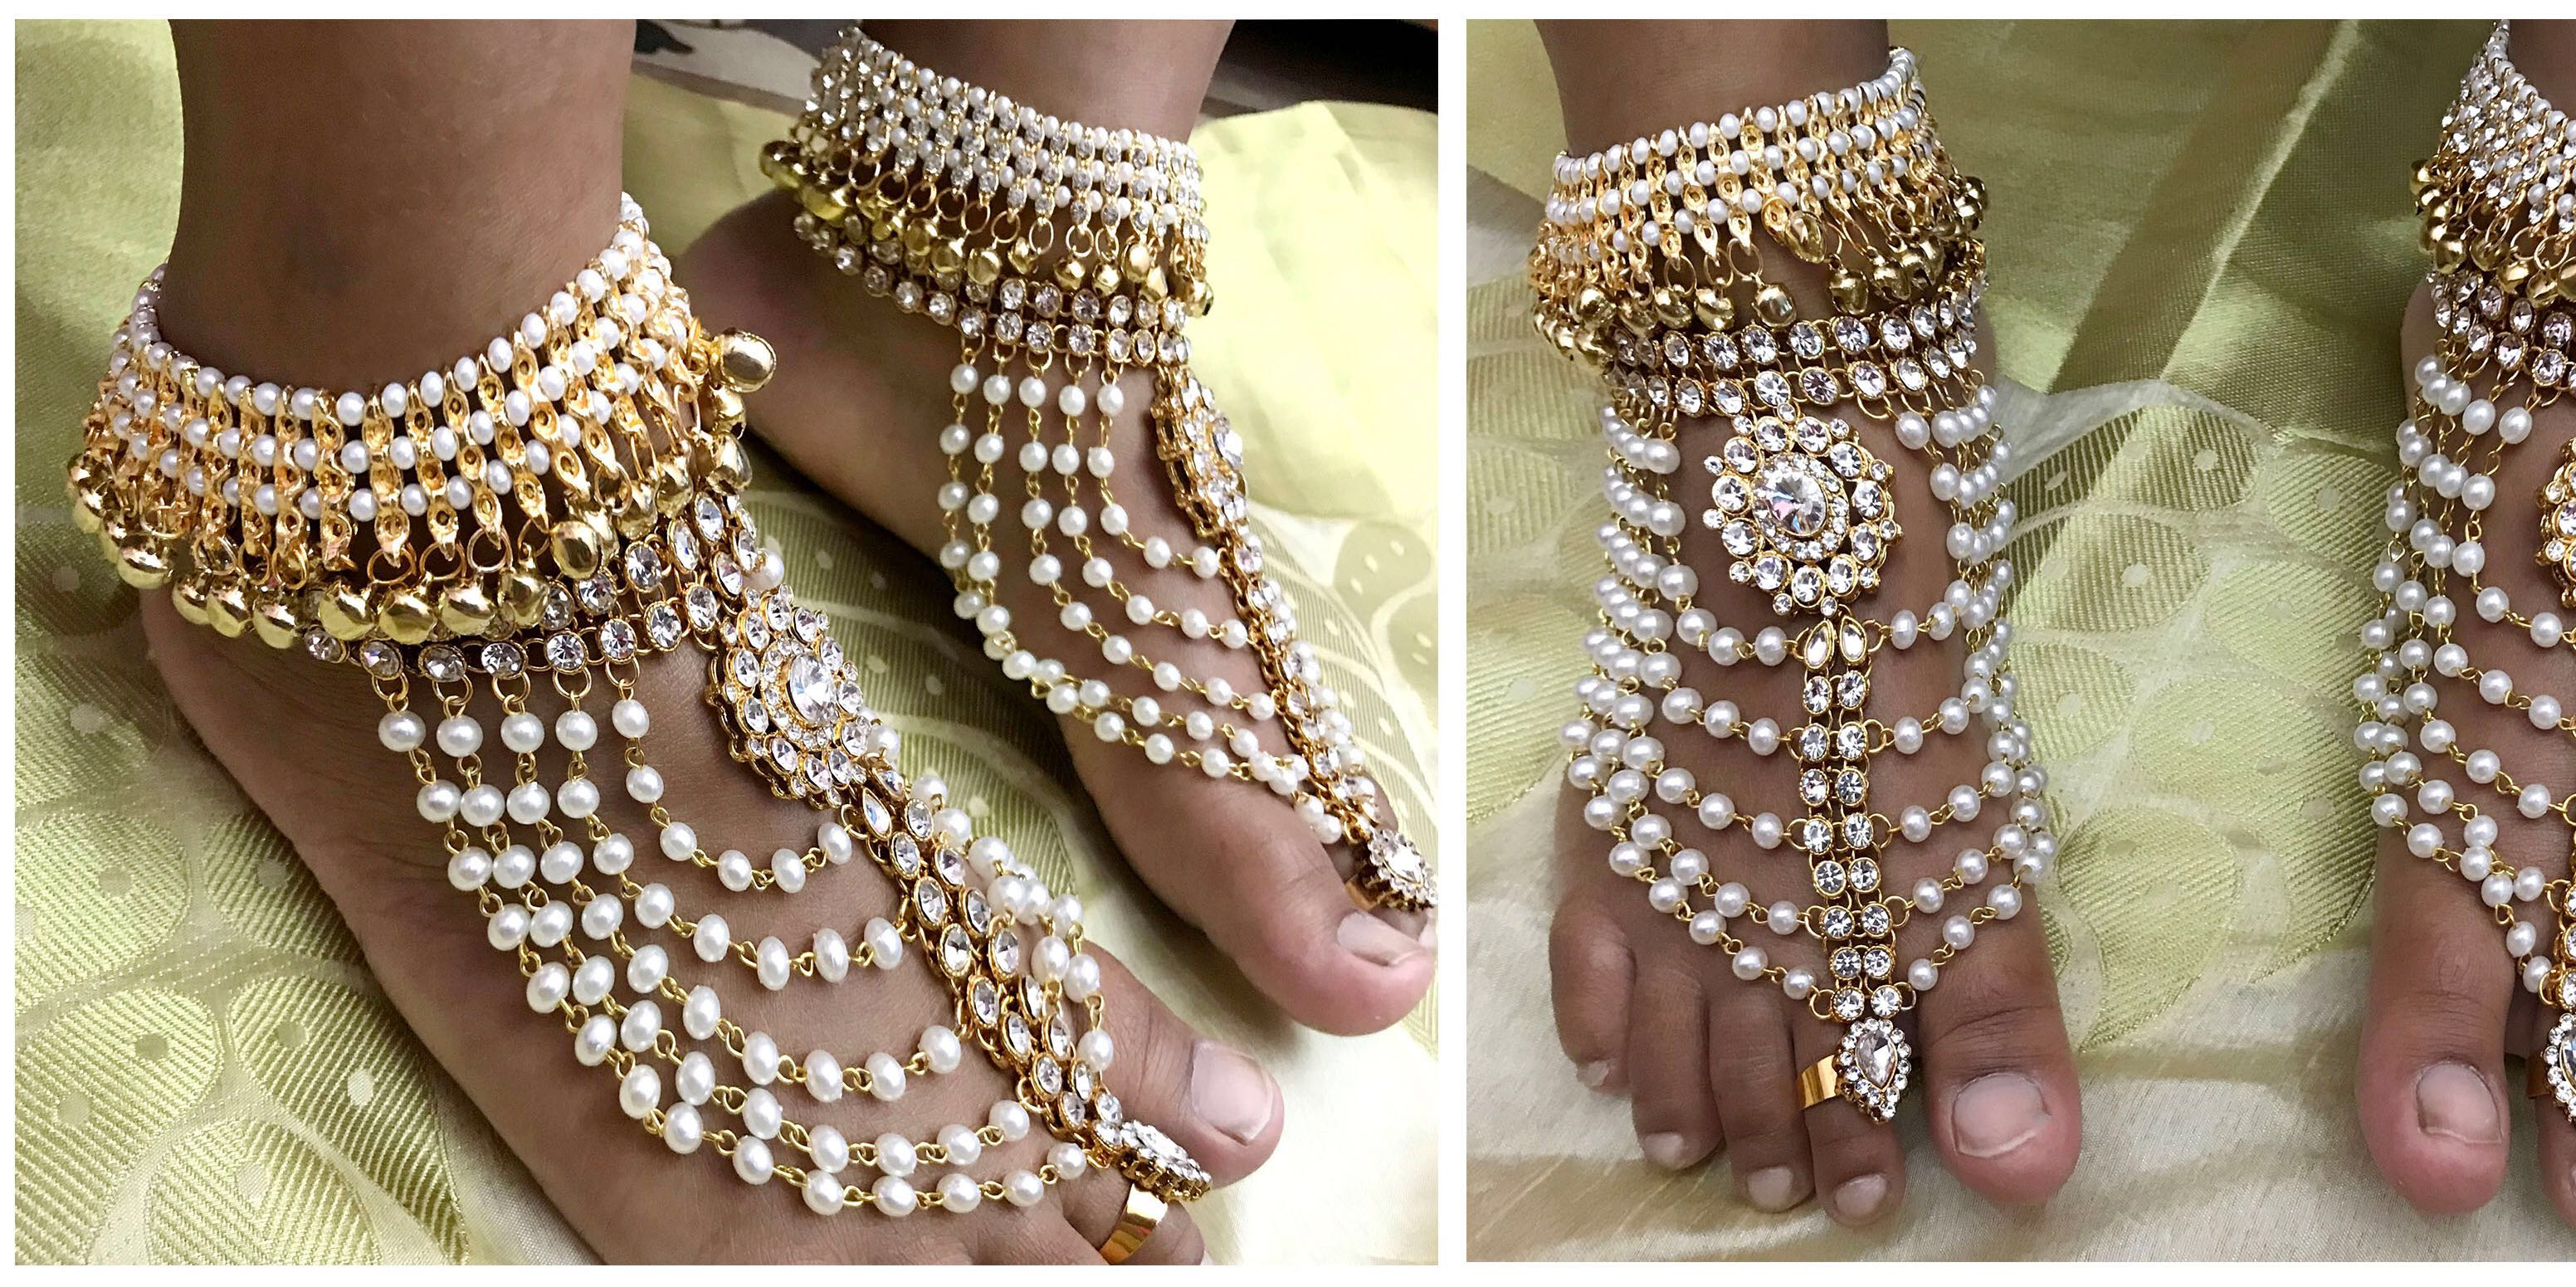 toe bracelet by handmade out and webpage peek the cute sale anklet sun ankle woman our foot summer on below in wearing must fun get can lace bracelets check ring jewelry you a have exclusive so